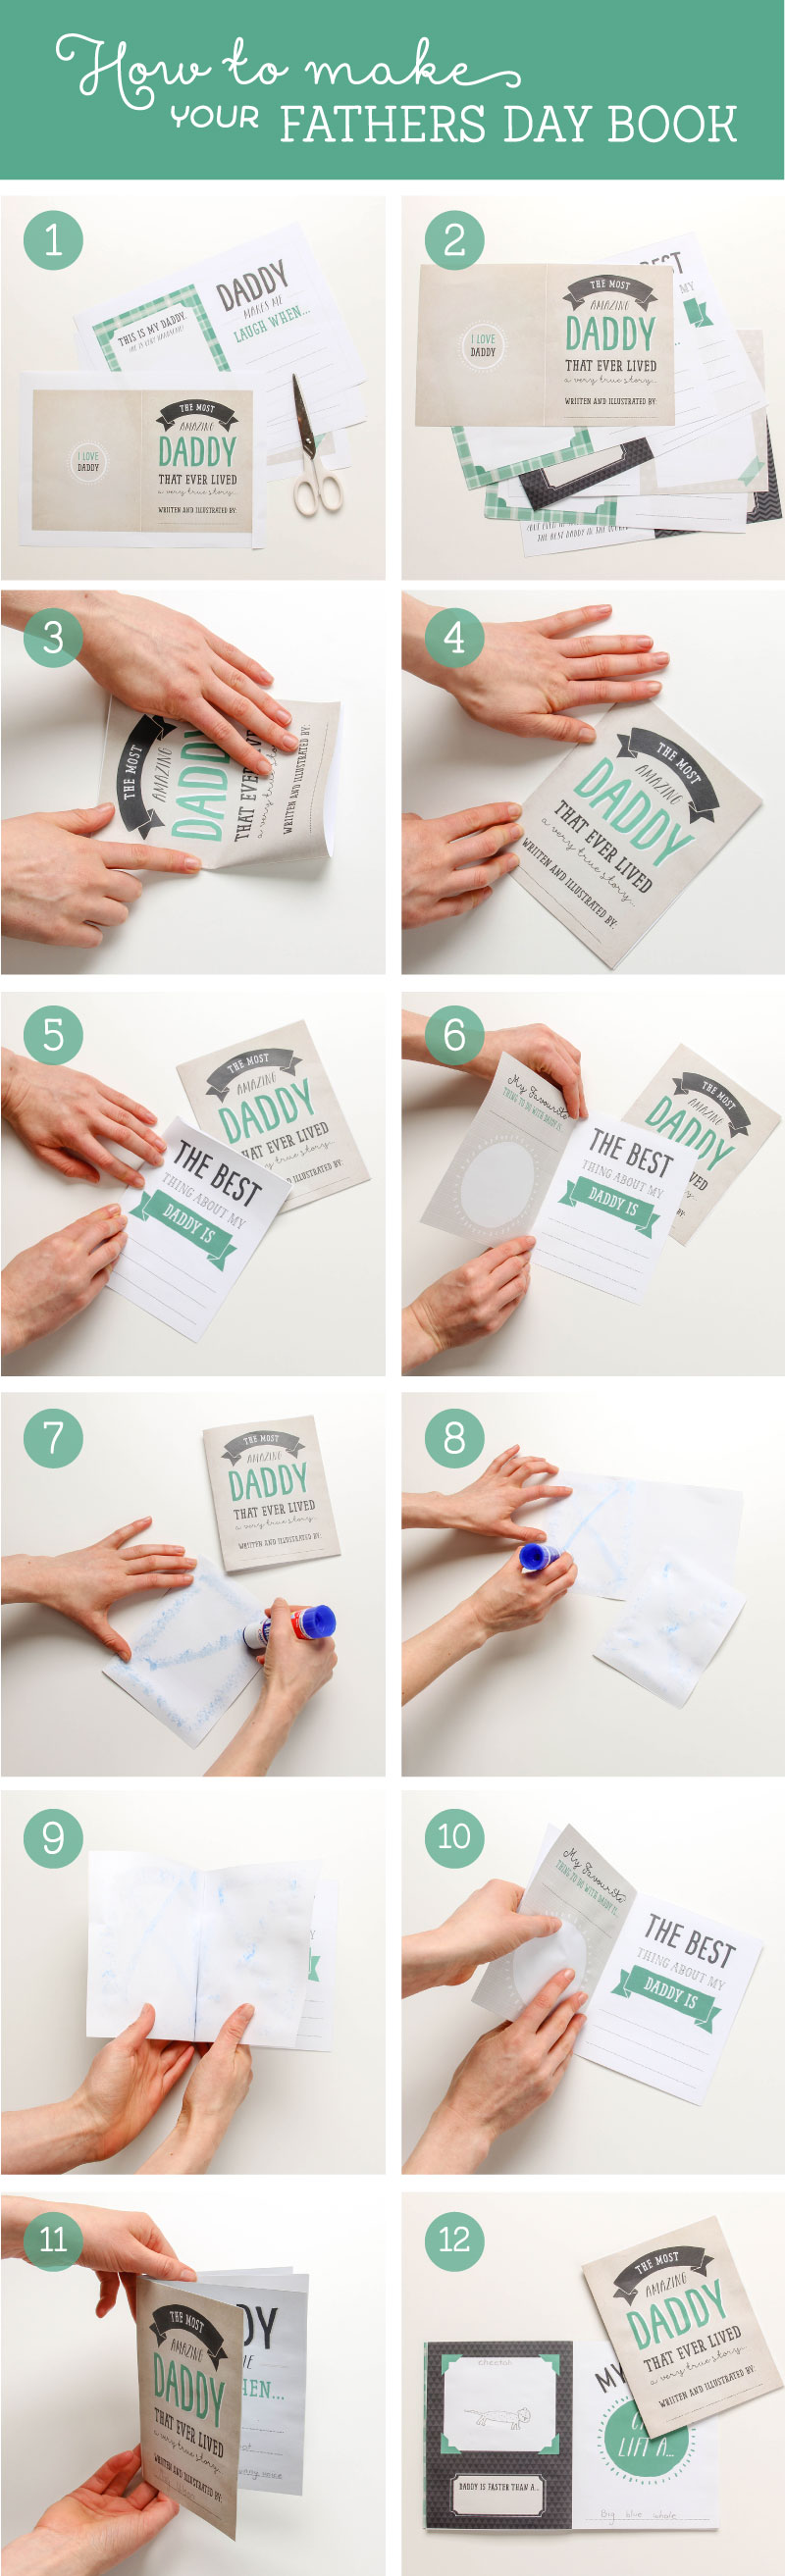 How to make your Free Fathers Day Printable Book | Tinyme Blog